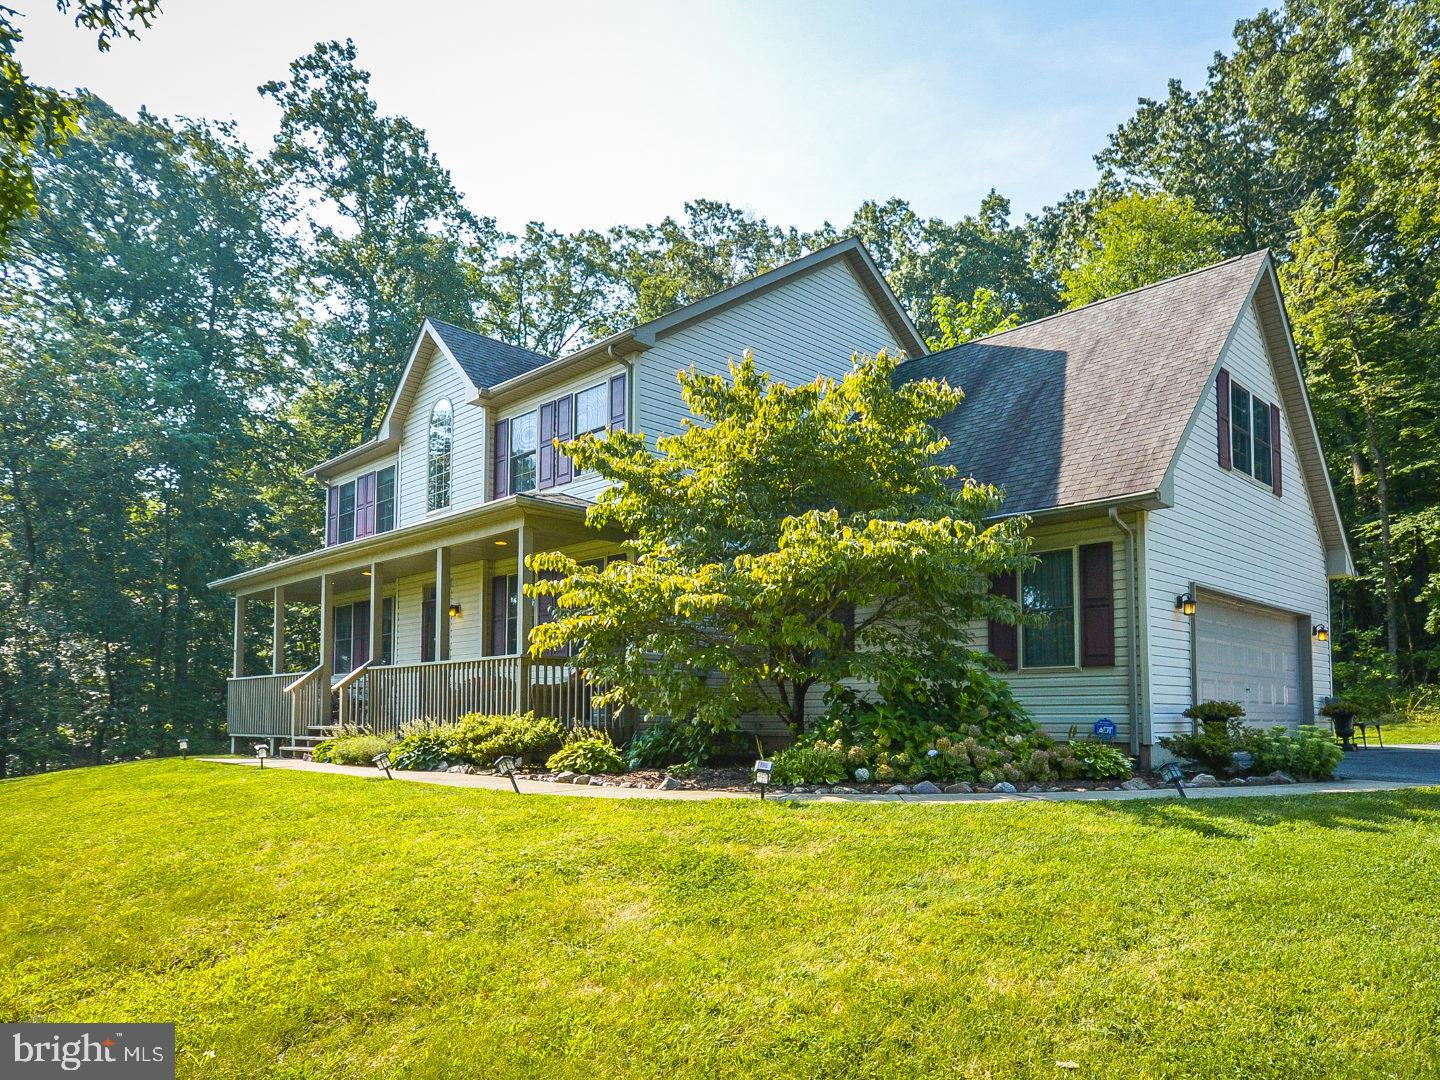 2368 Route 412, Hellertown, PA 18055